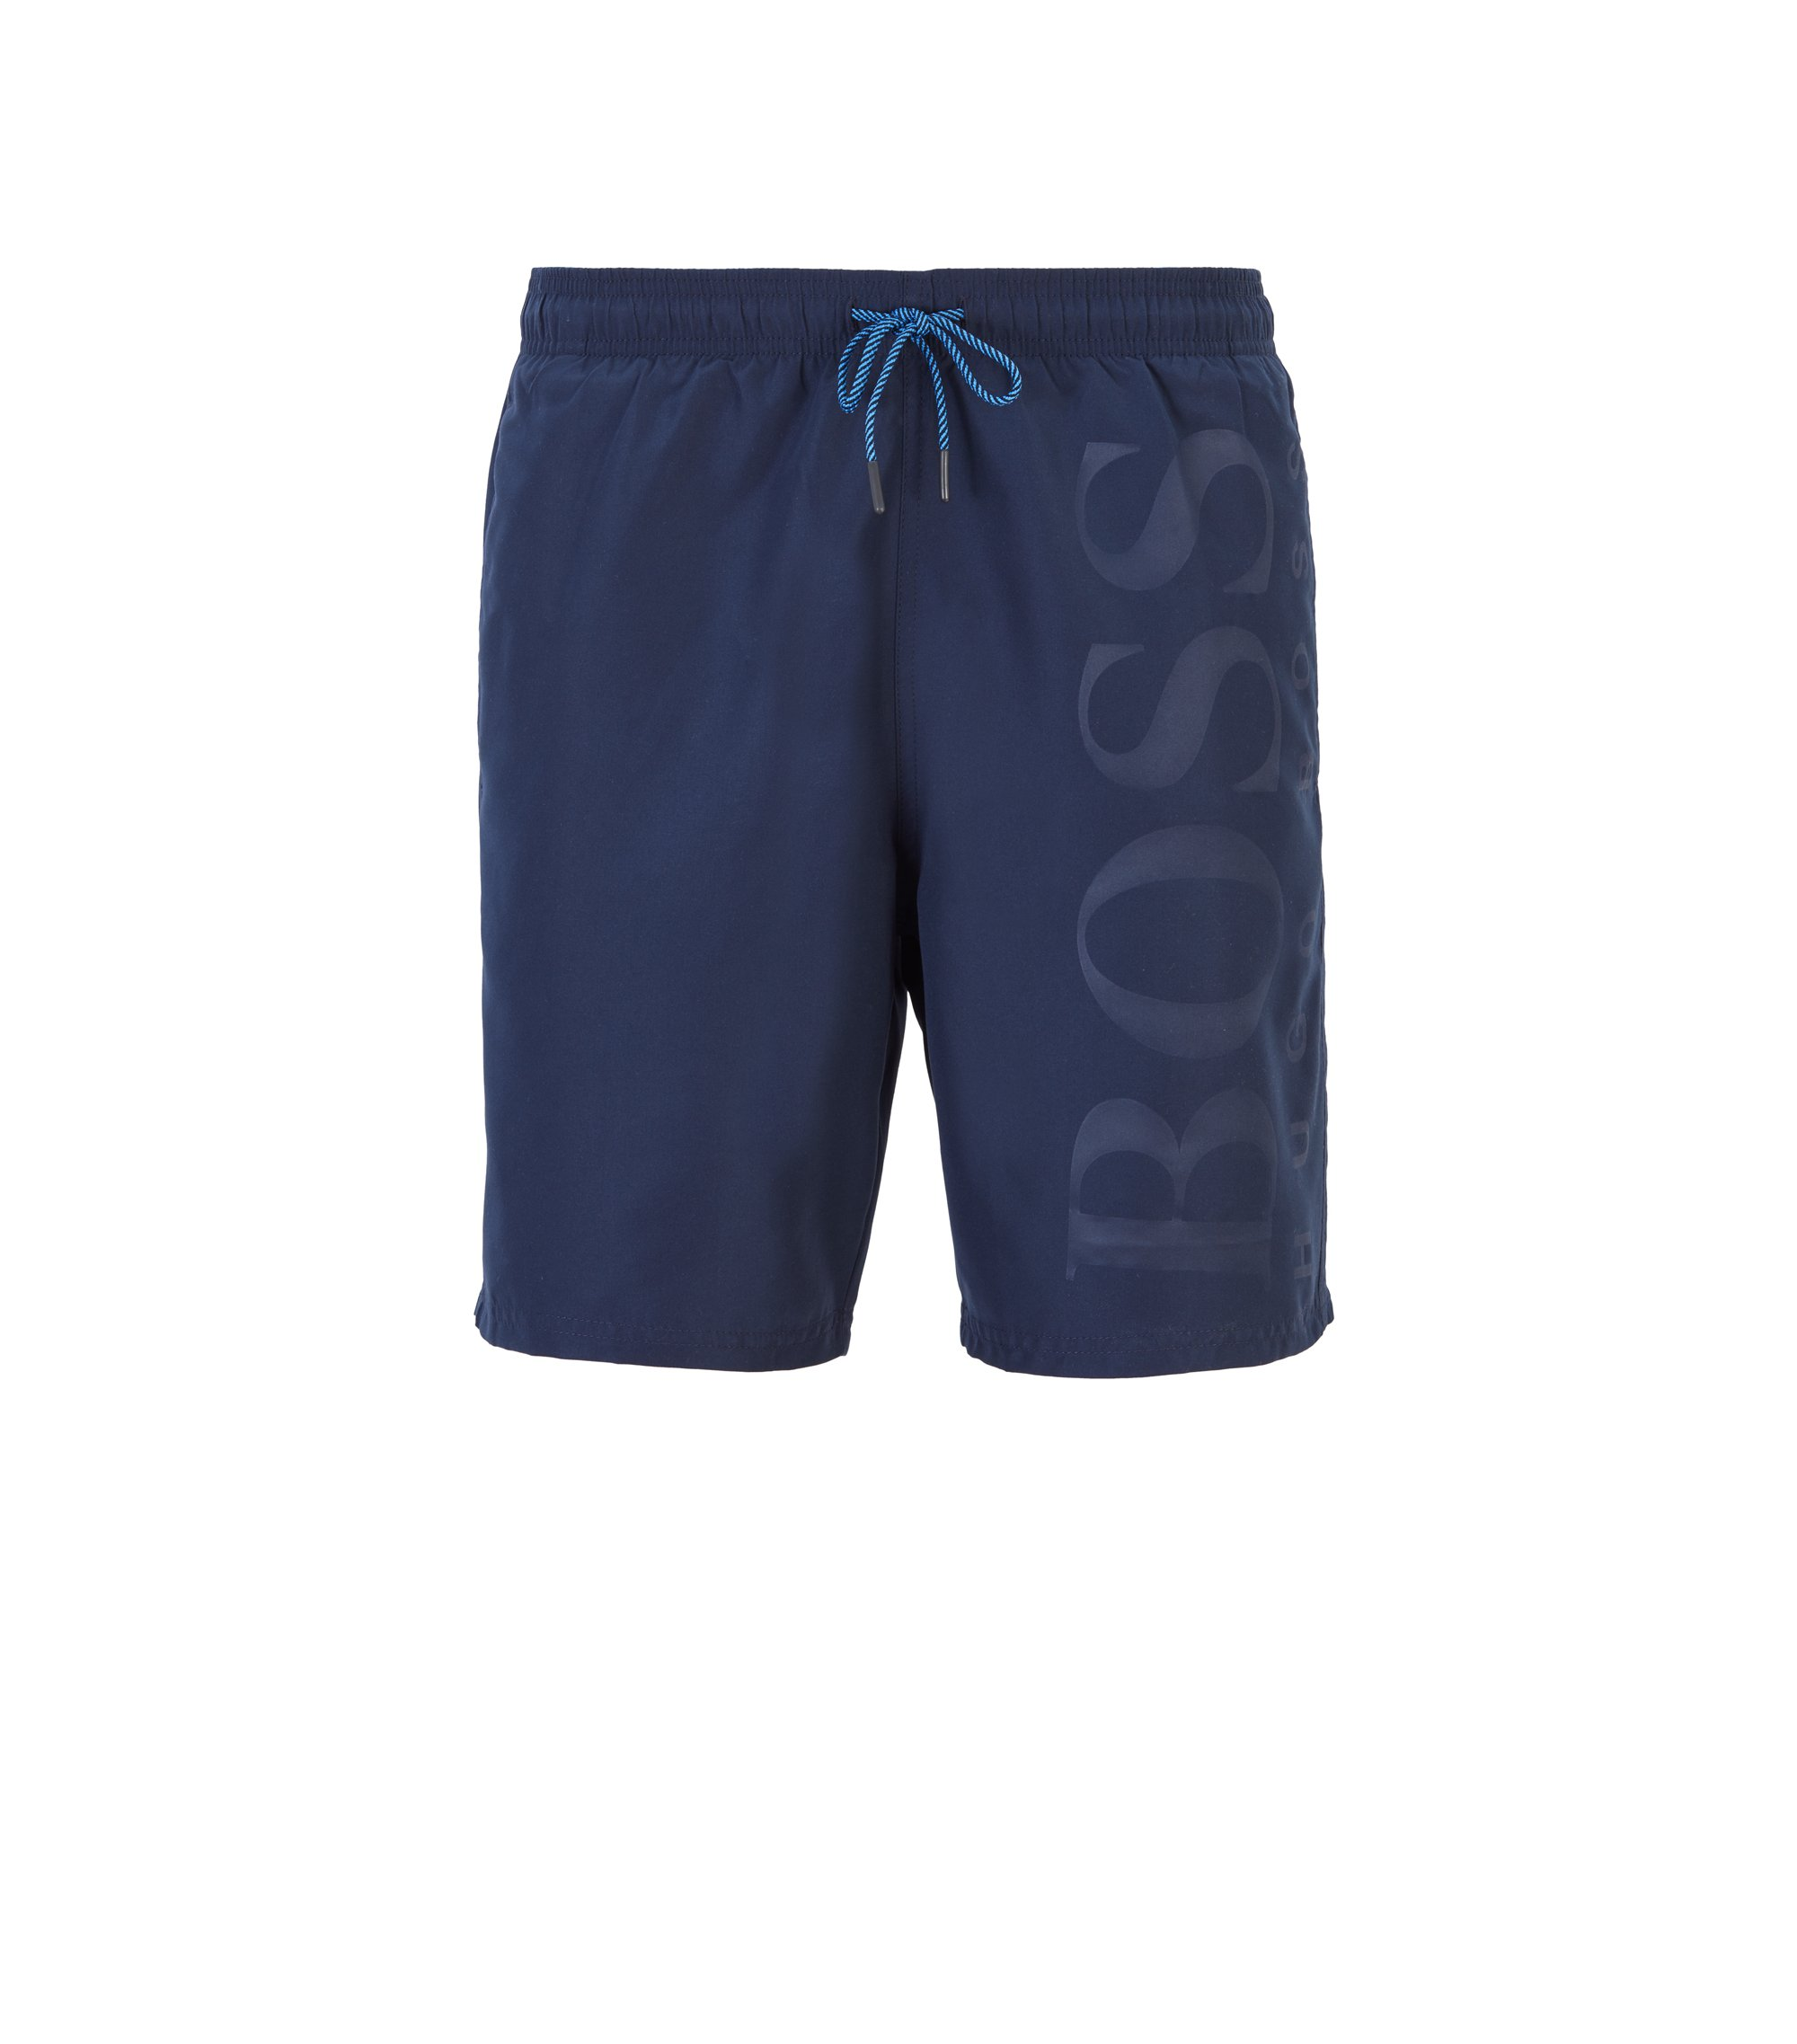 'Orca' | Quick Dry Logo Swim Trunks, Dark Blue